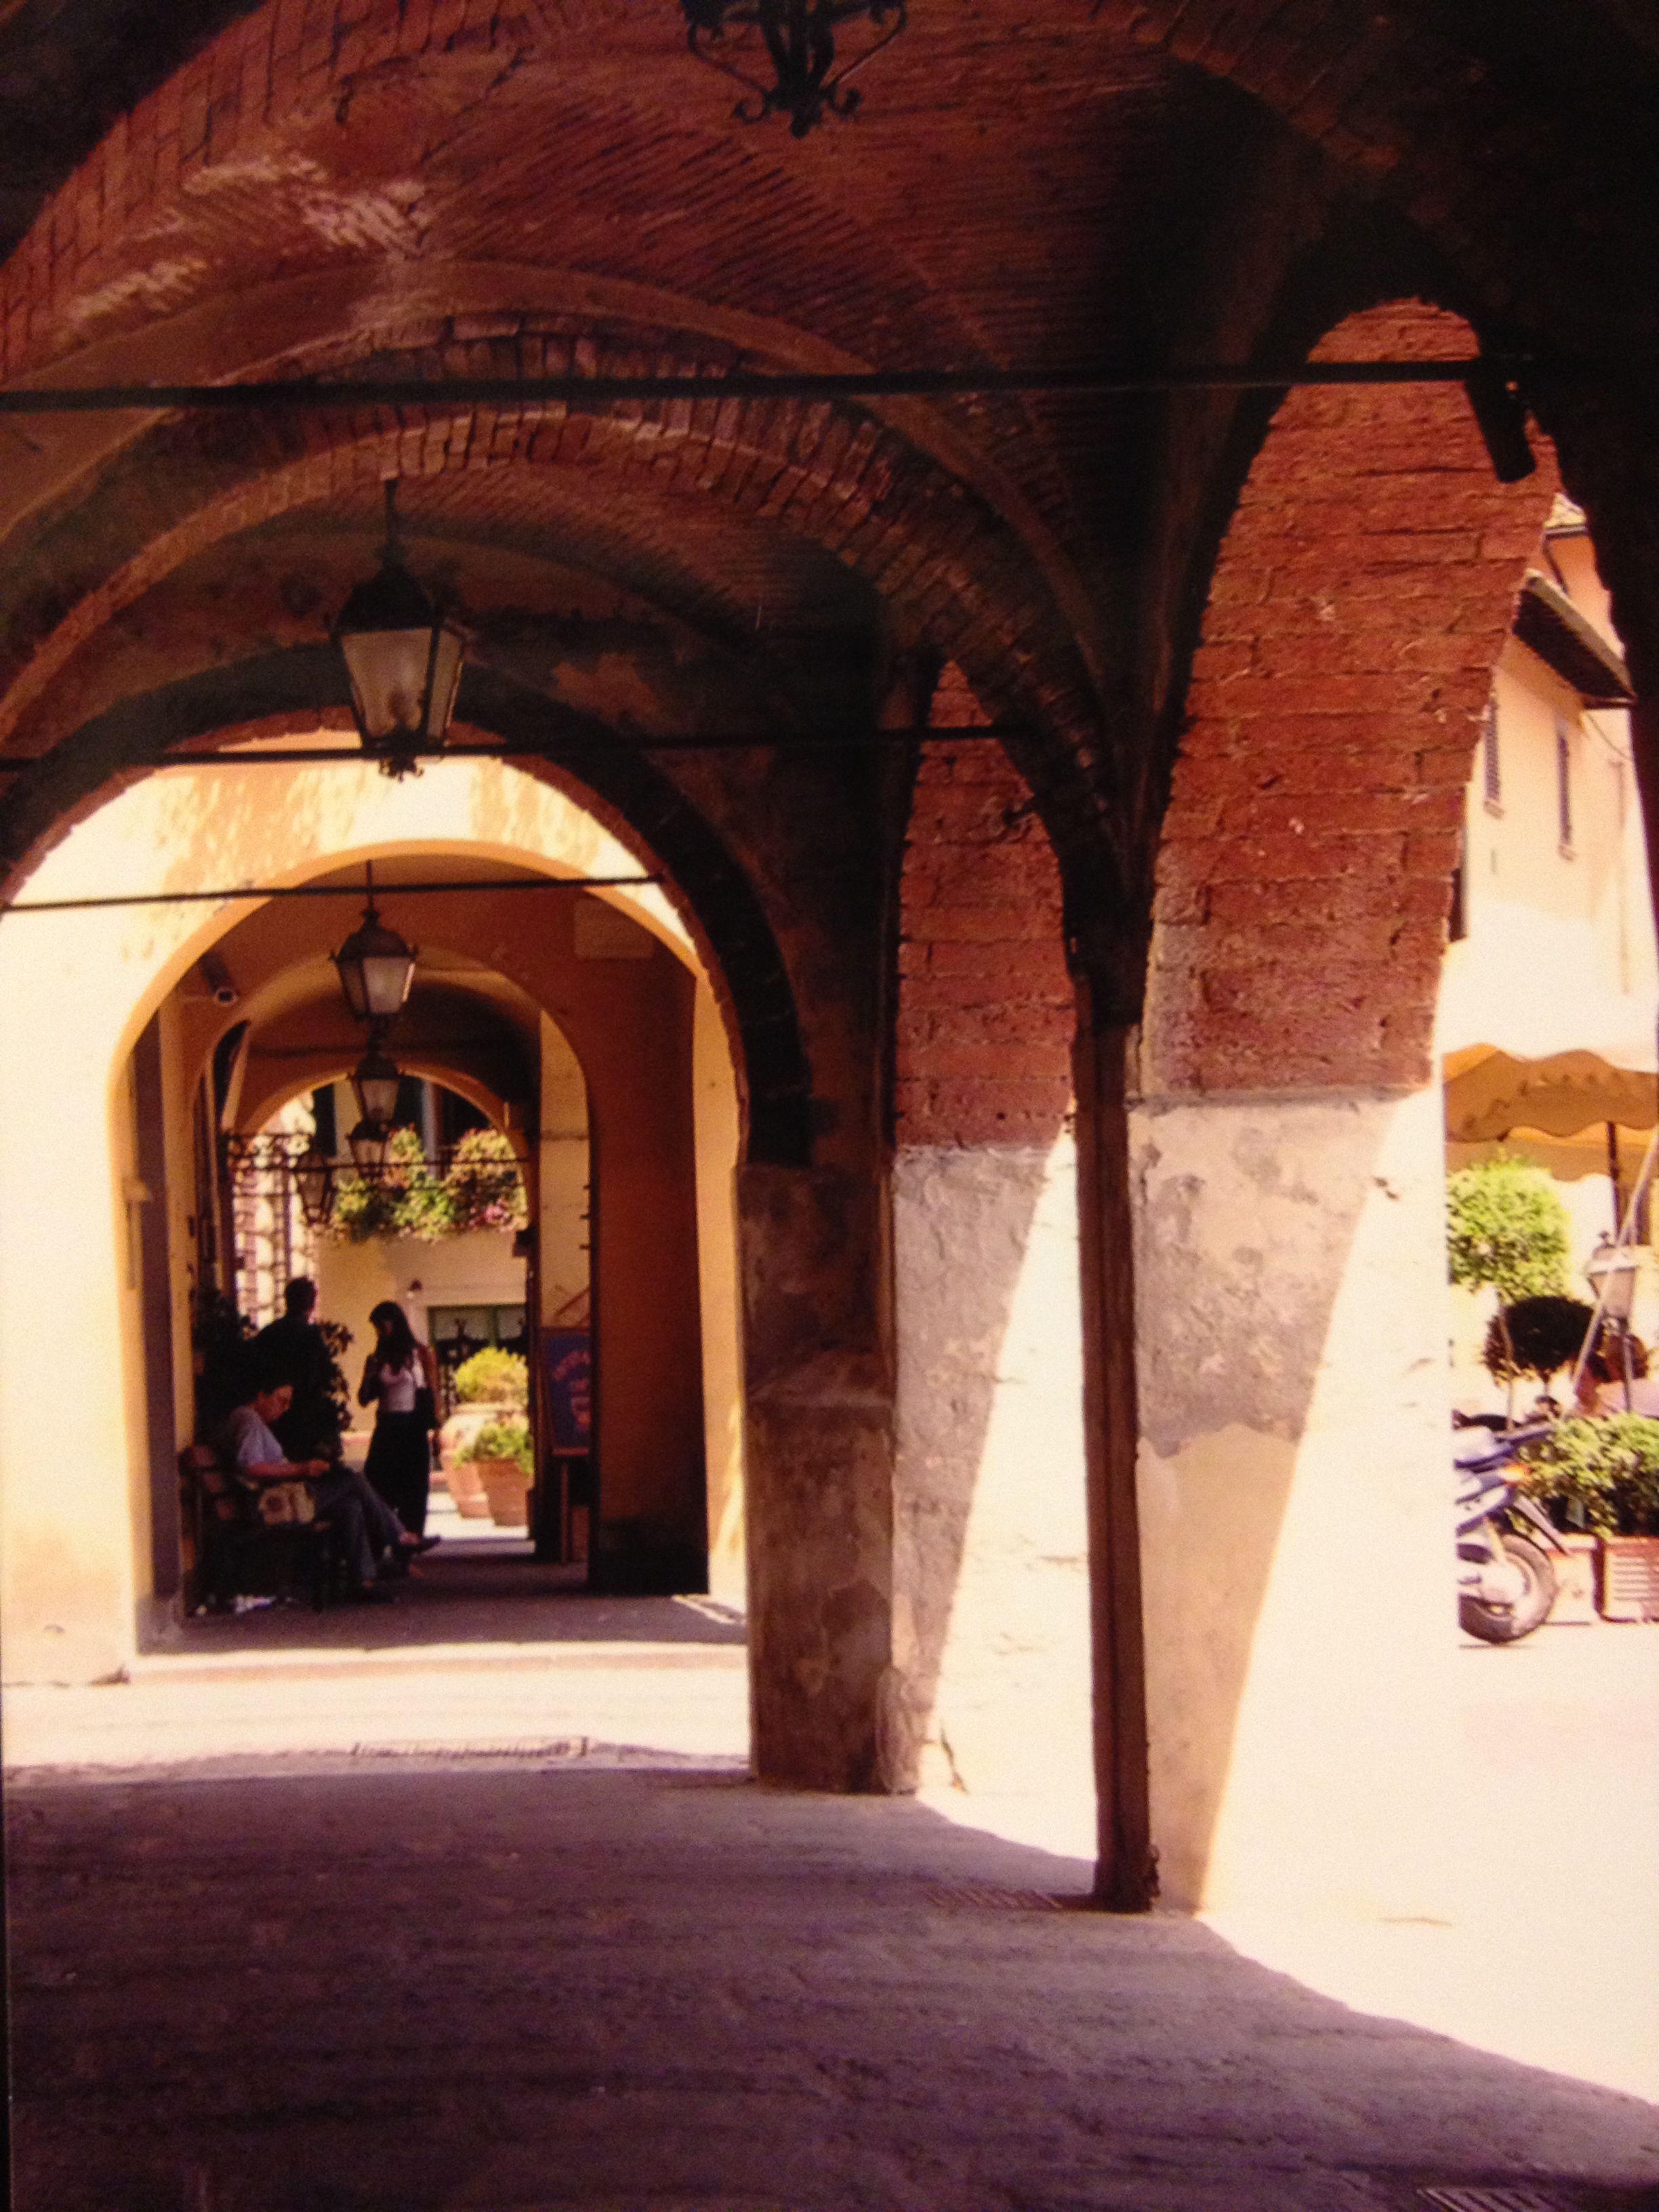 One of the many old stone covered walkway in Tuscany.